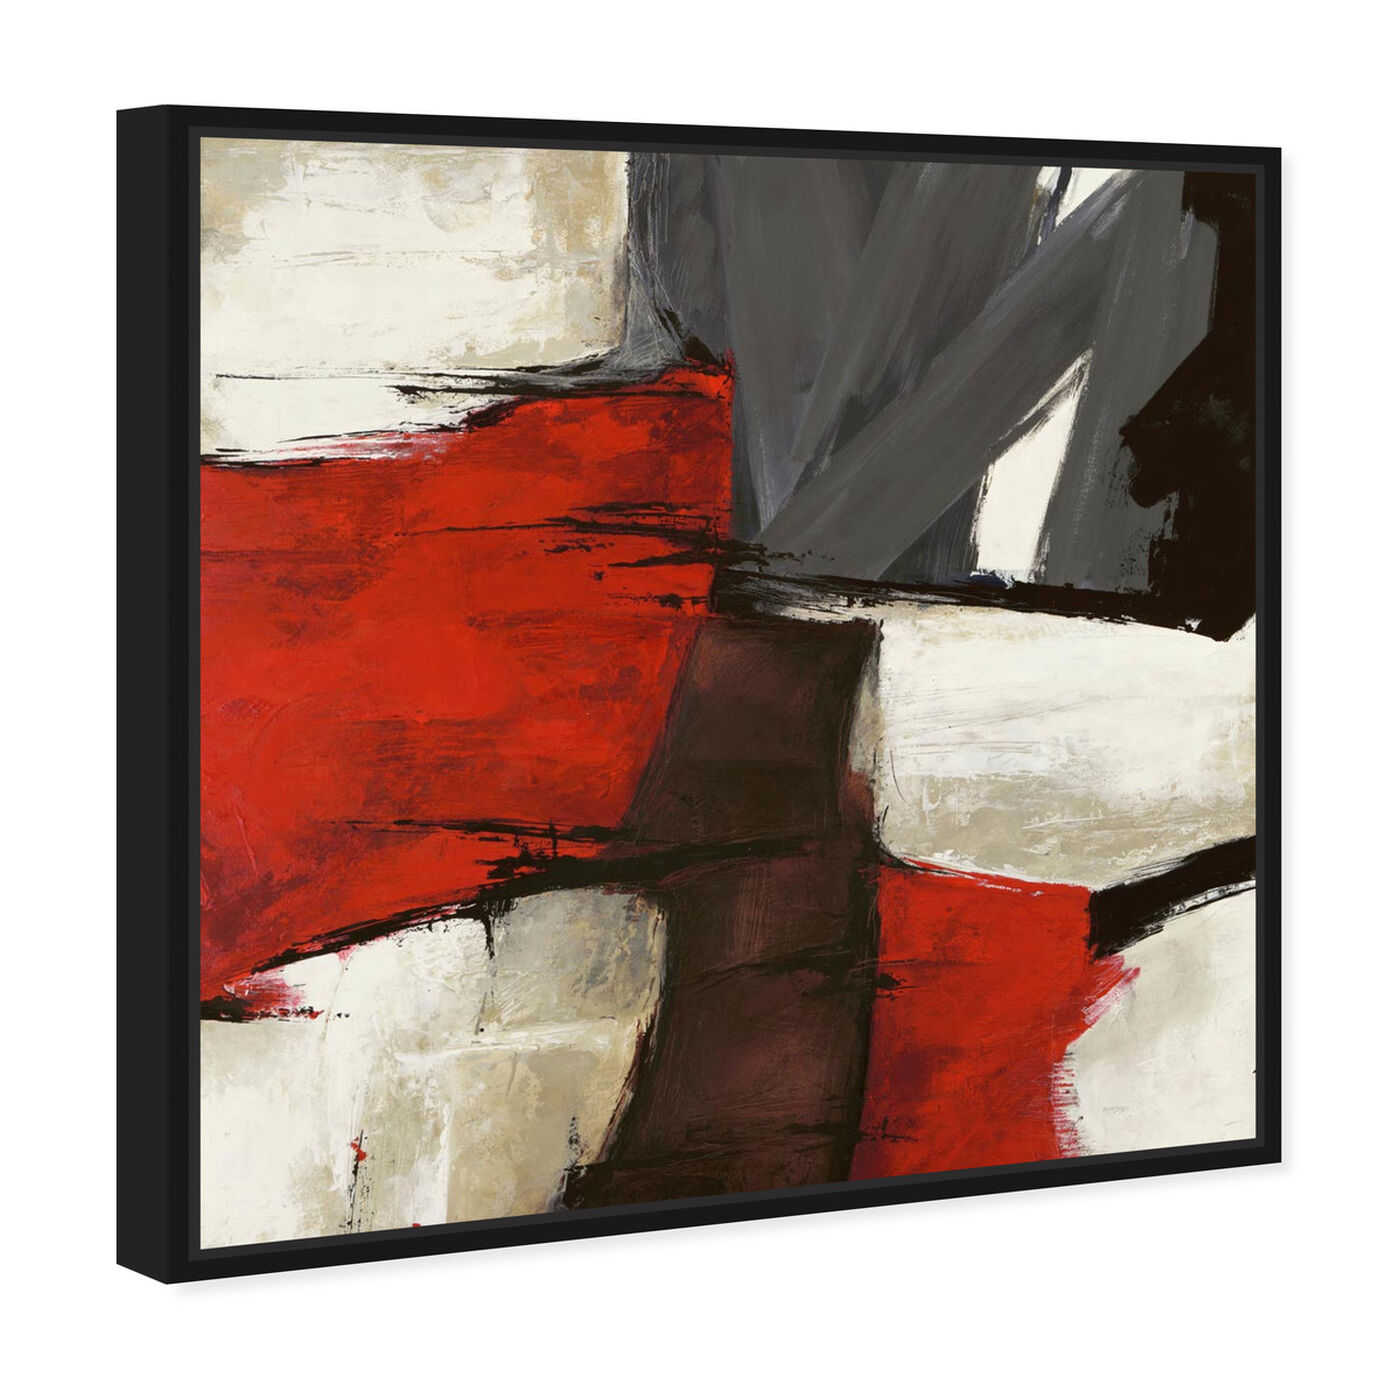 Angled view of Sai - Rubrum featuring abstract and paint art.